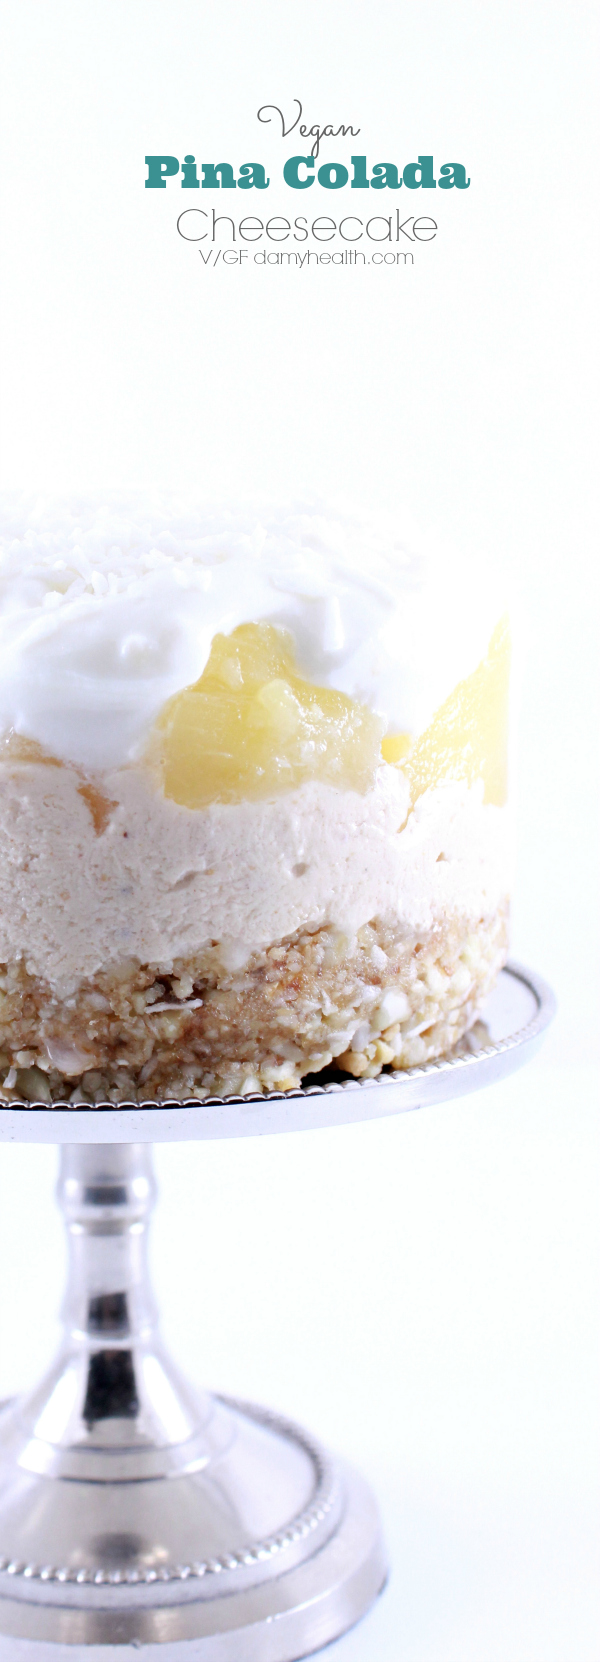 Vegan Pina Colada Cheesecake